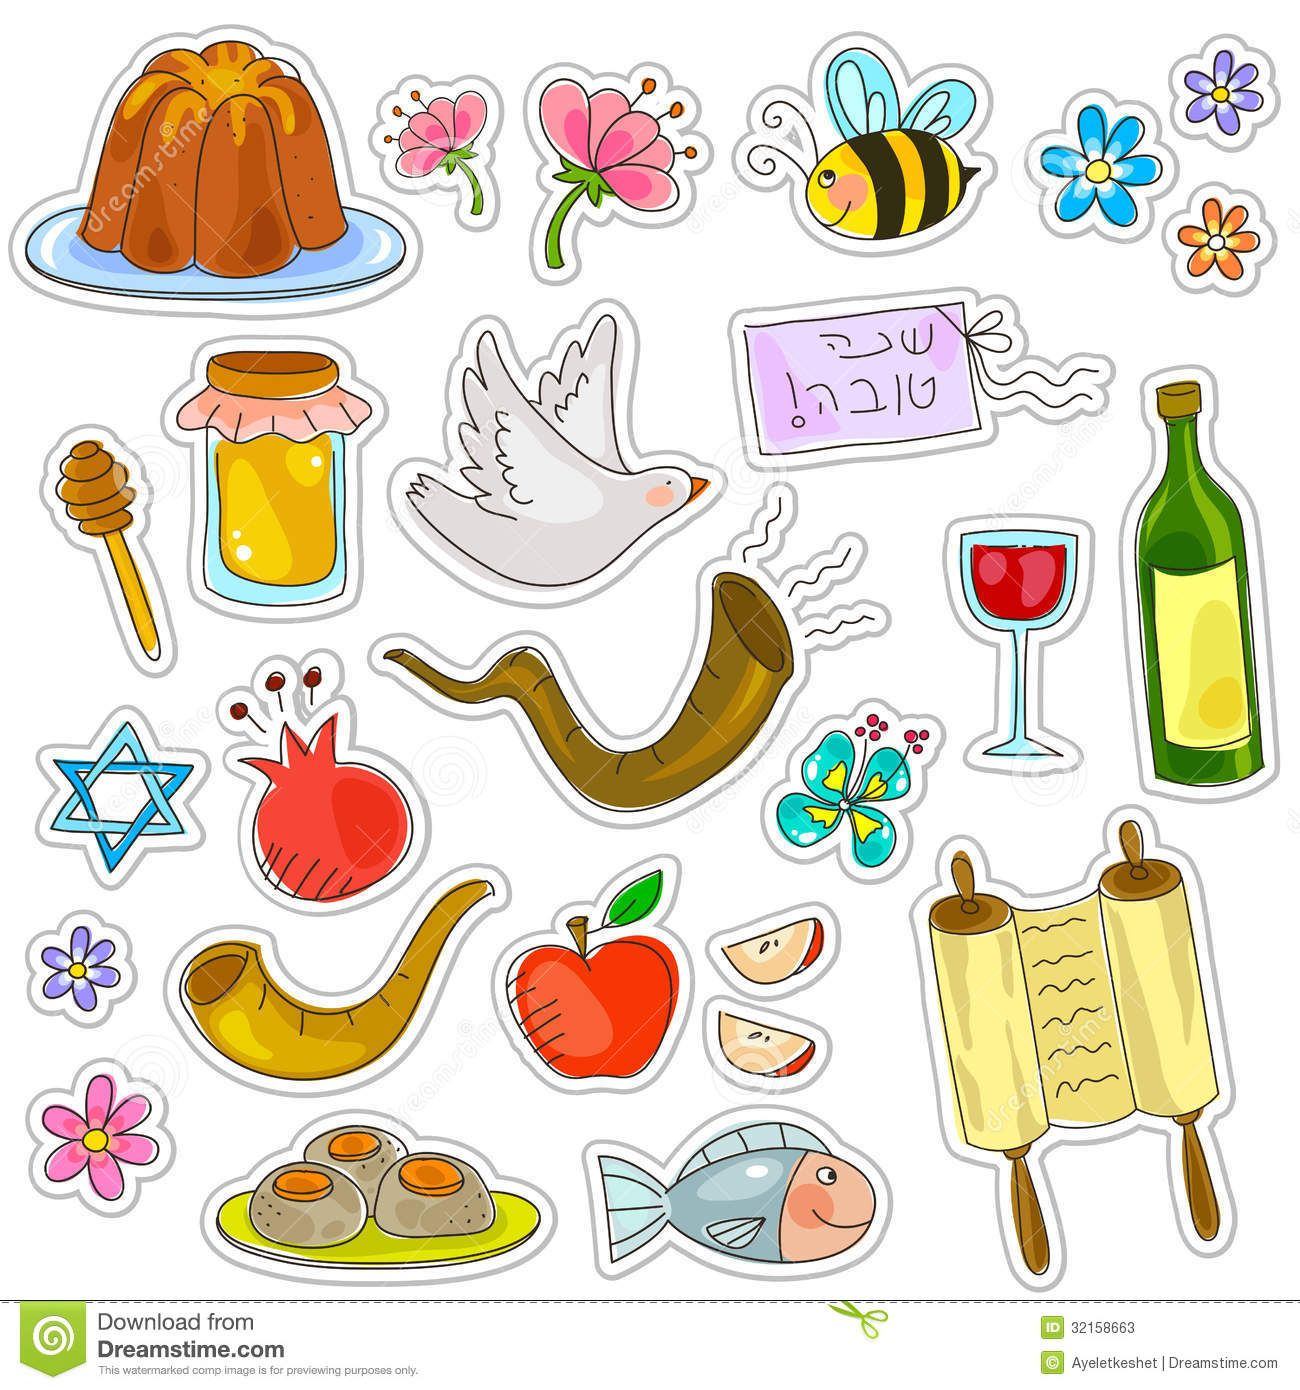 happy rosh hashanah greeting galleries